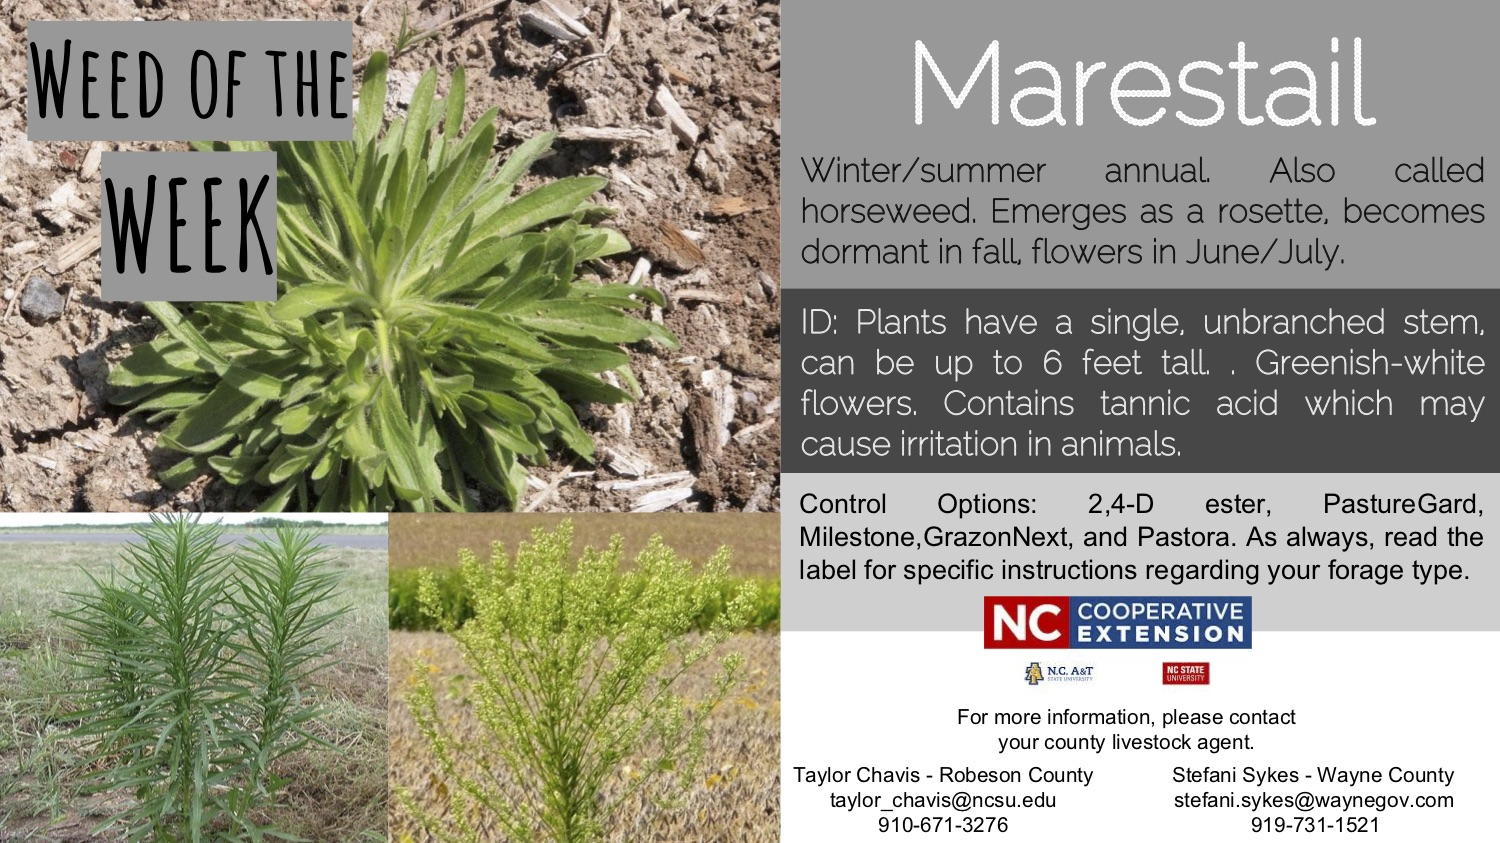 Information on the marestail weed